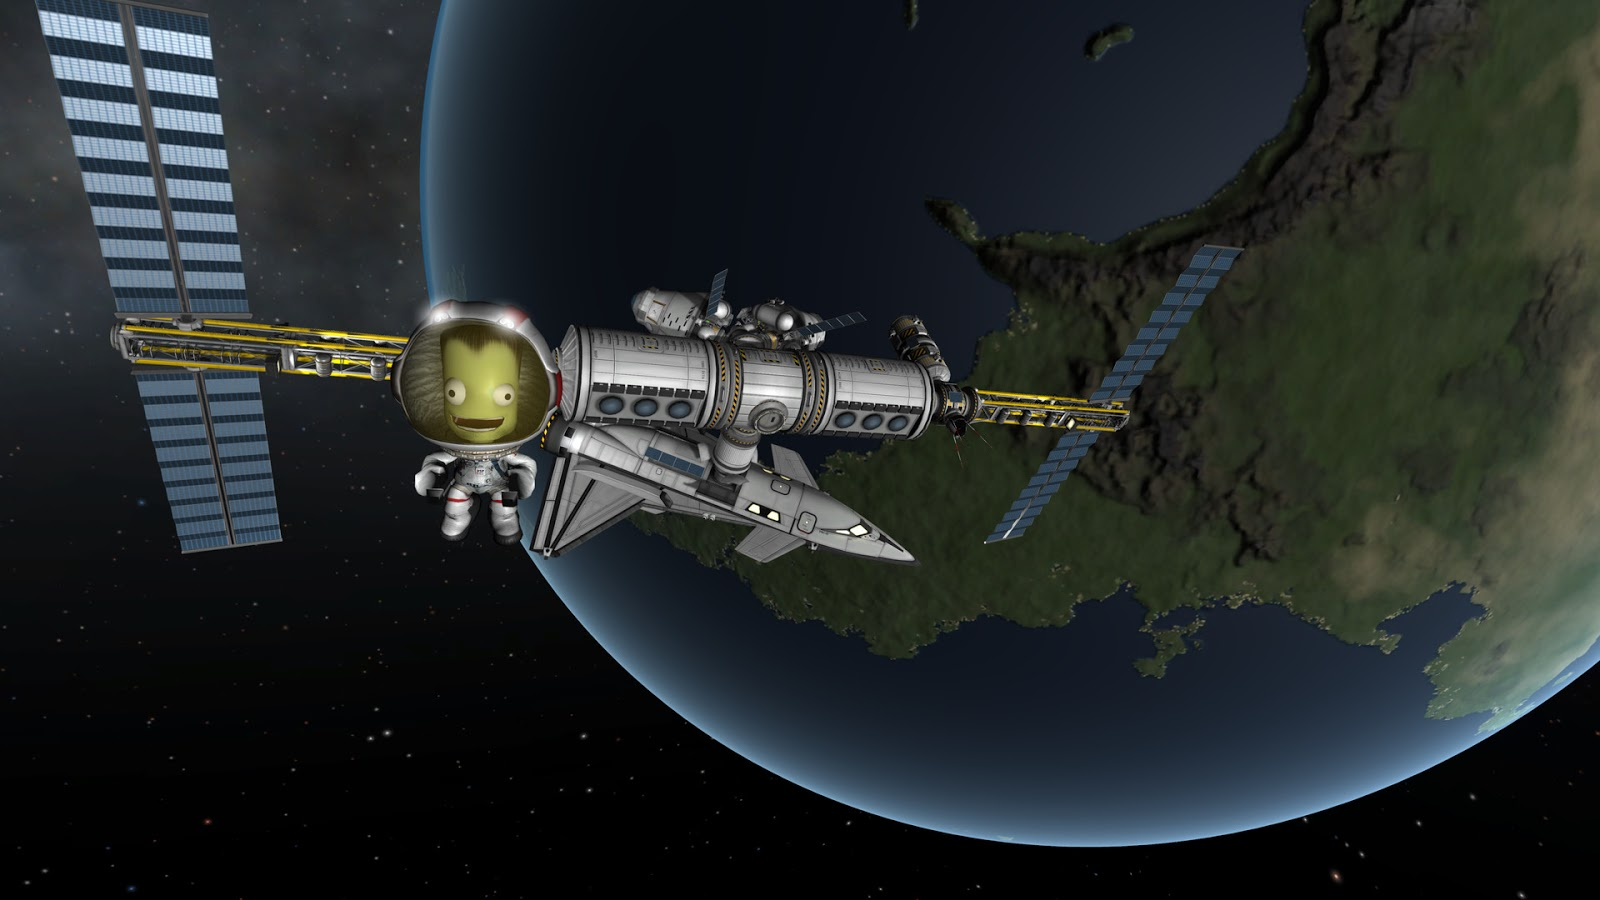 kerbal space program review - photo #44